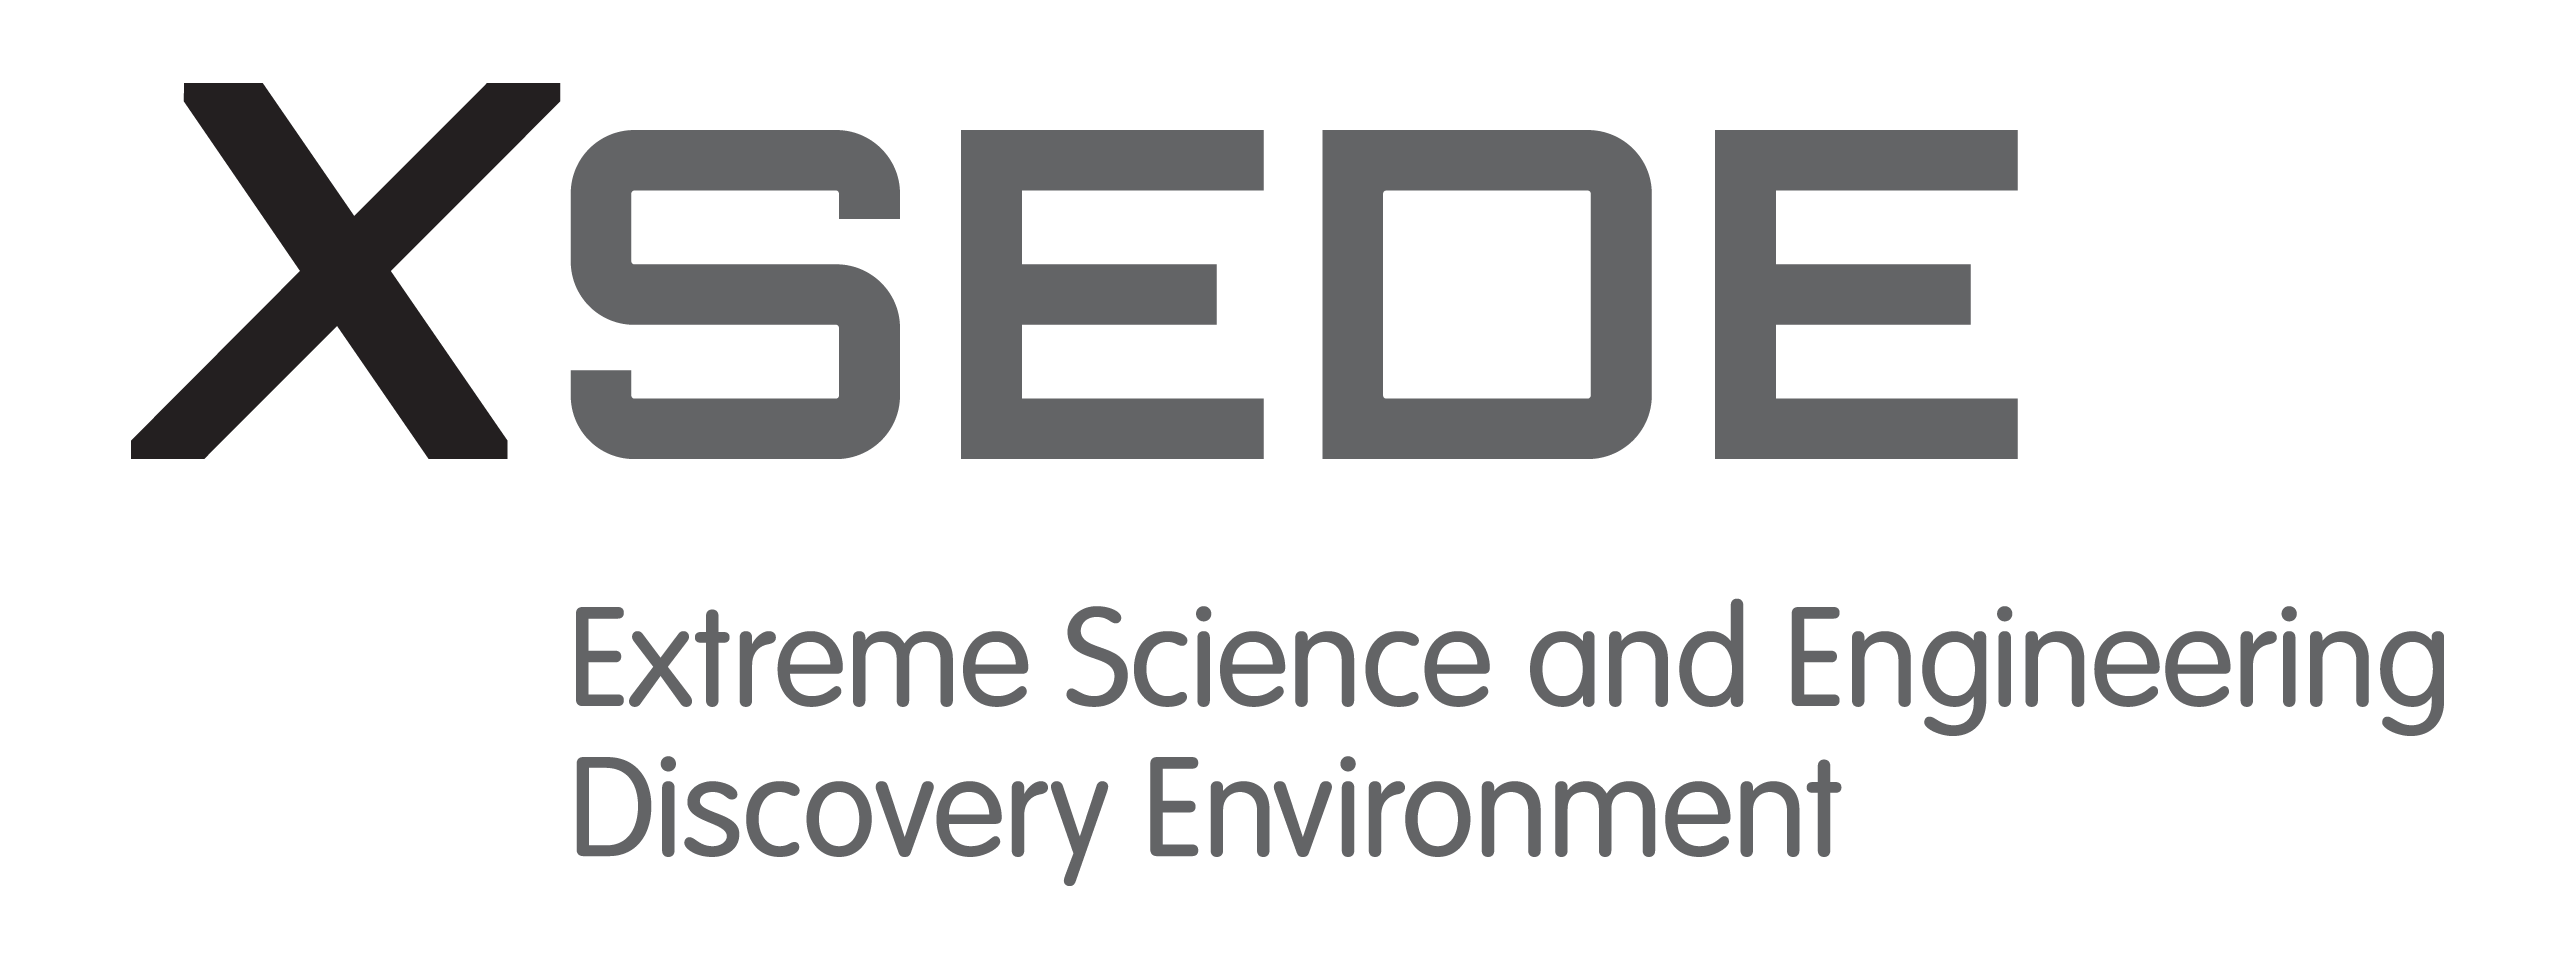 NSF XSEDE Extreme Science and Engineering Discovery Environmnet